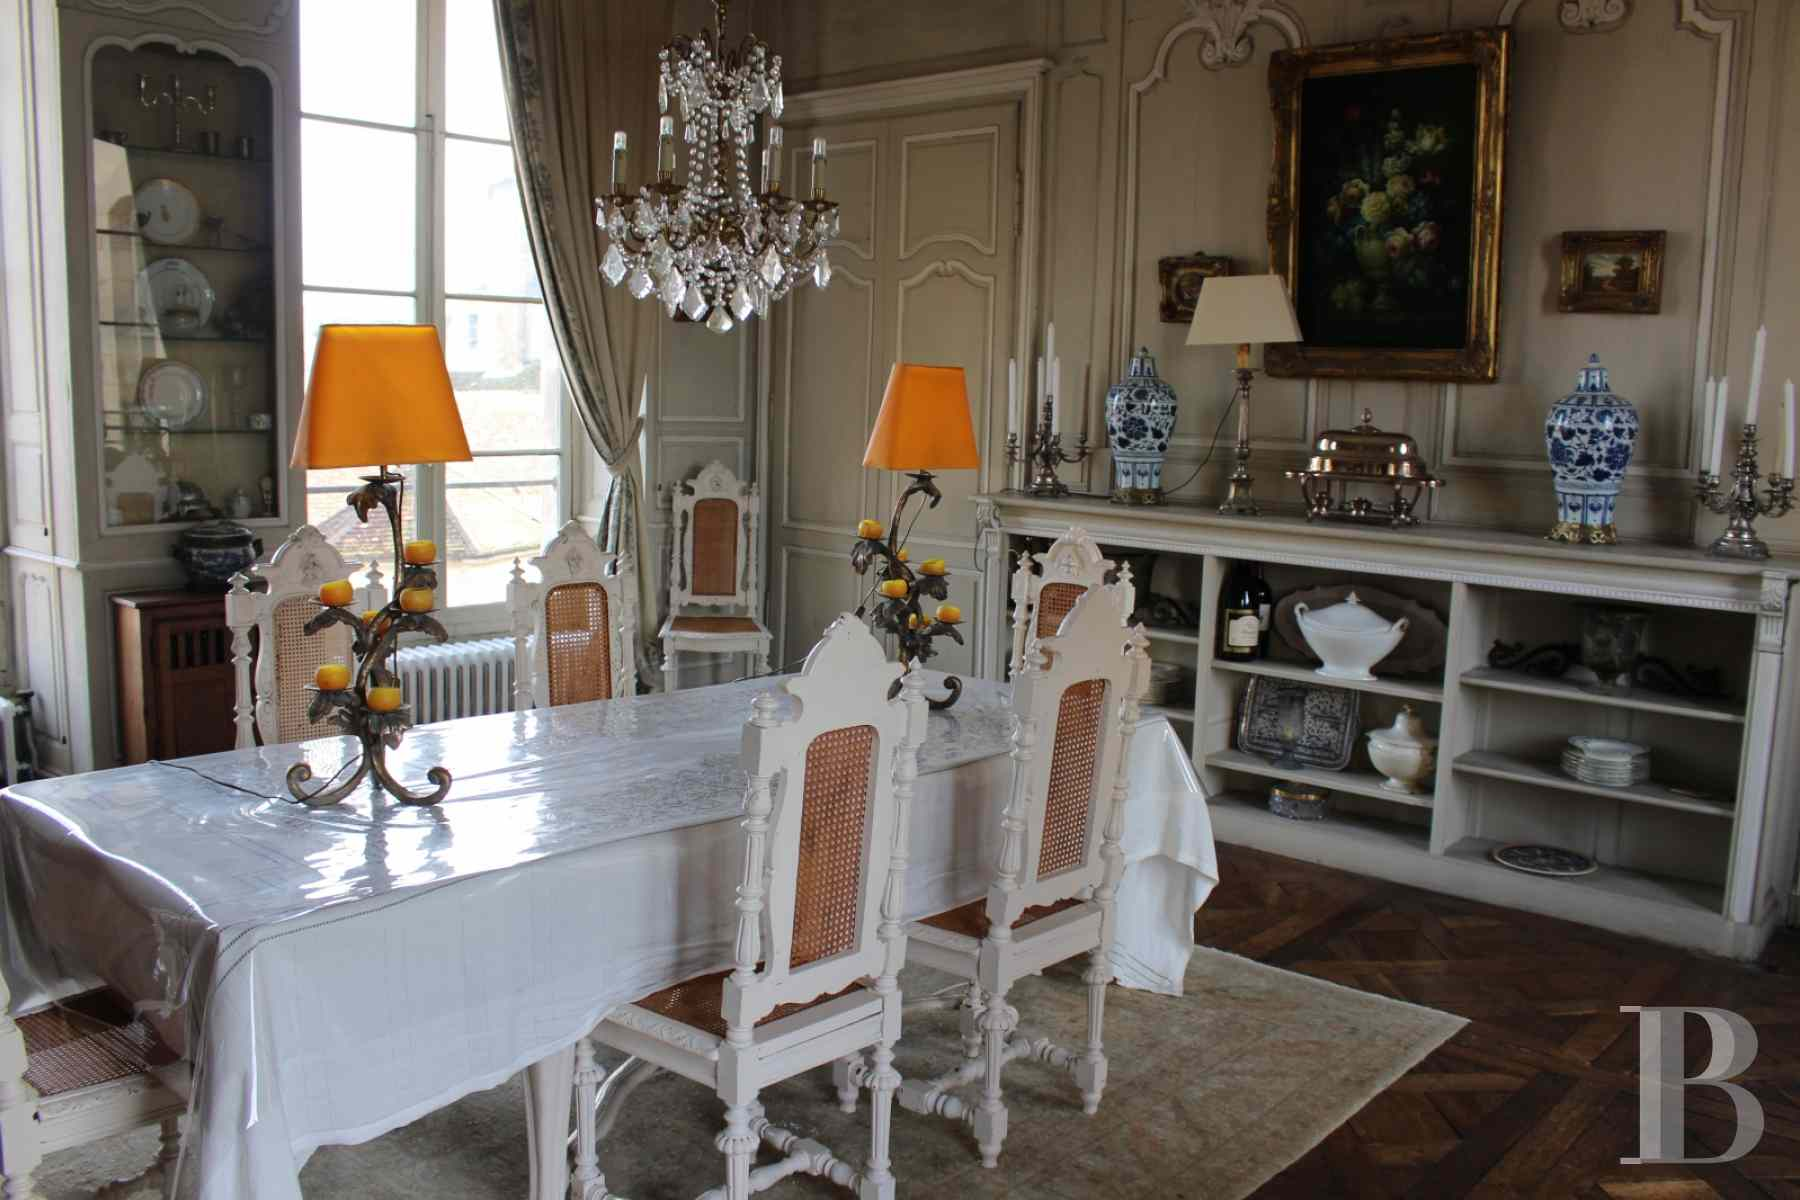 mansion houses for sale France burgundy 18th century - 13 zoom